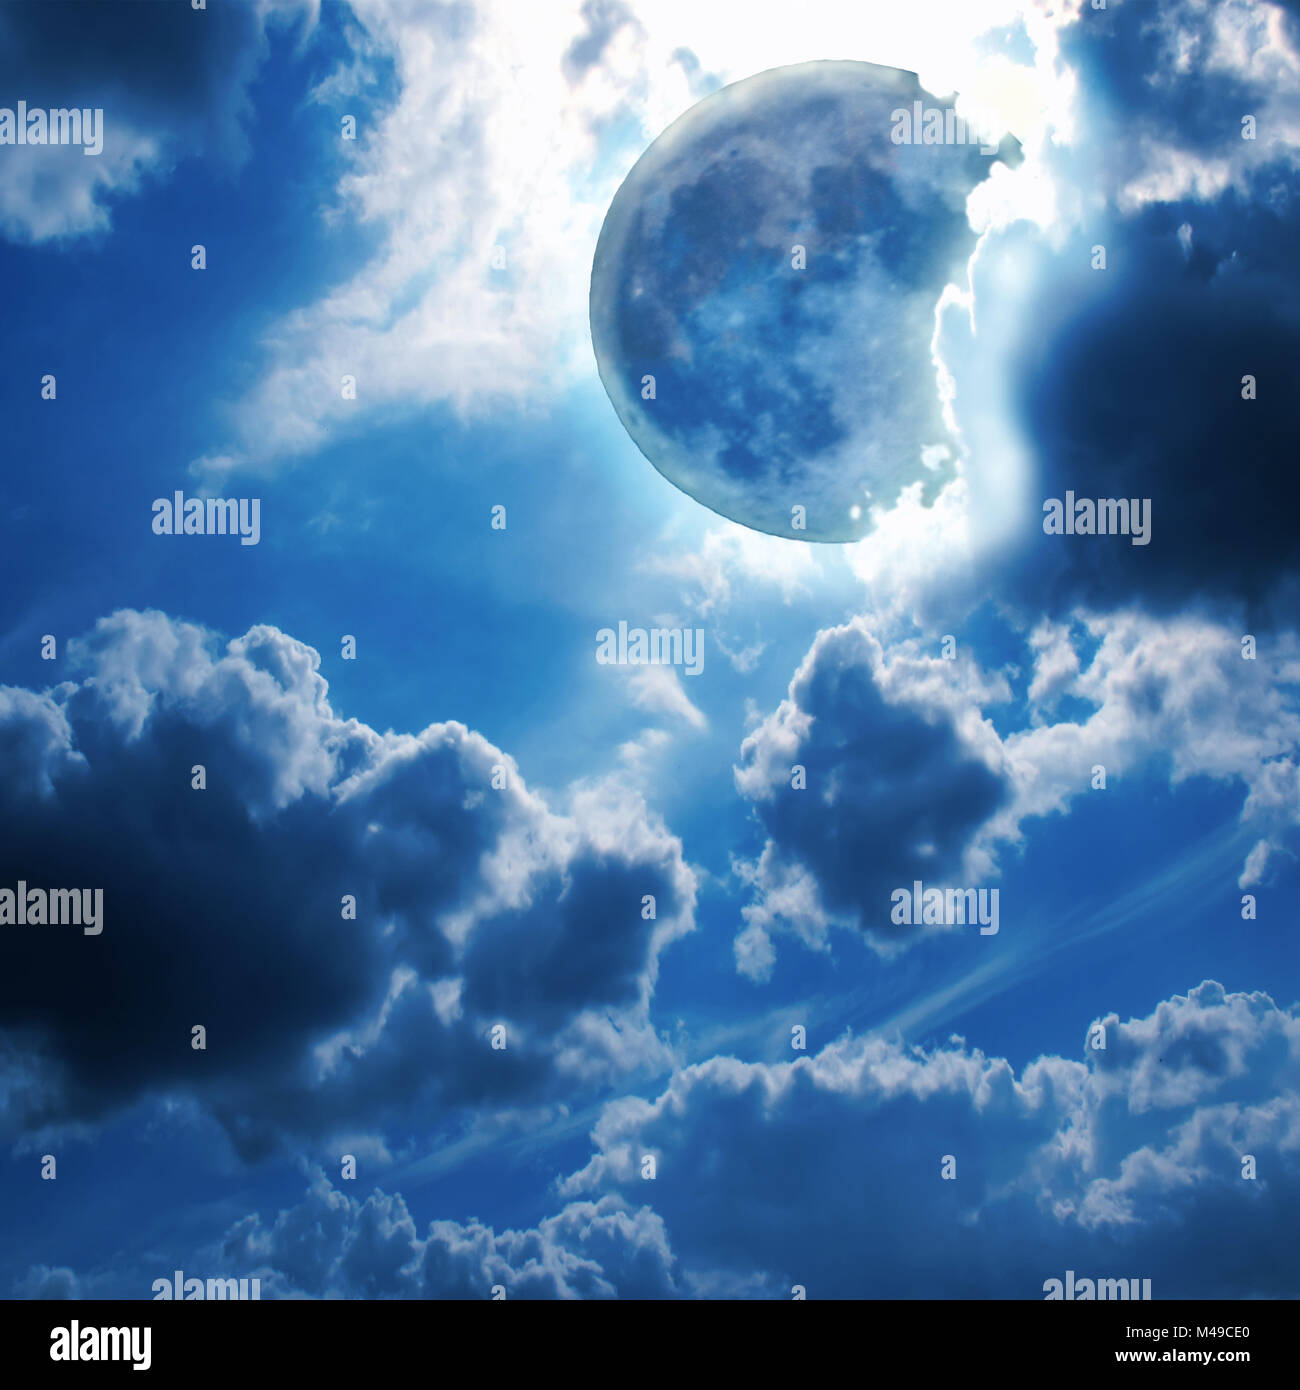 Full moon shines through the clouds in the night sky - Stock Image